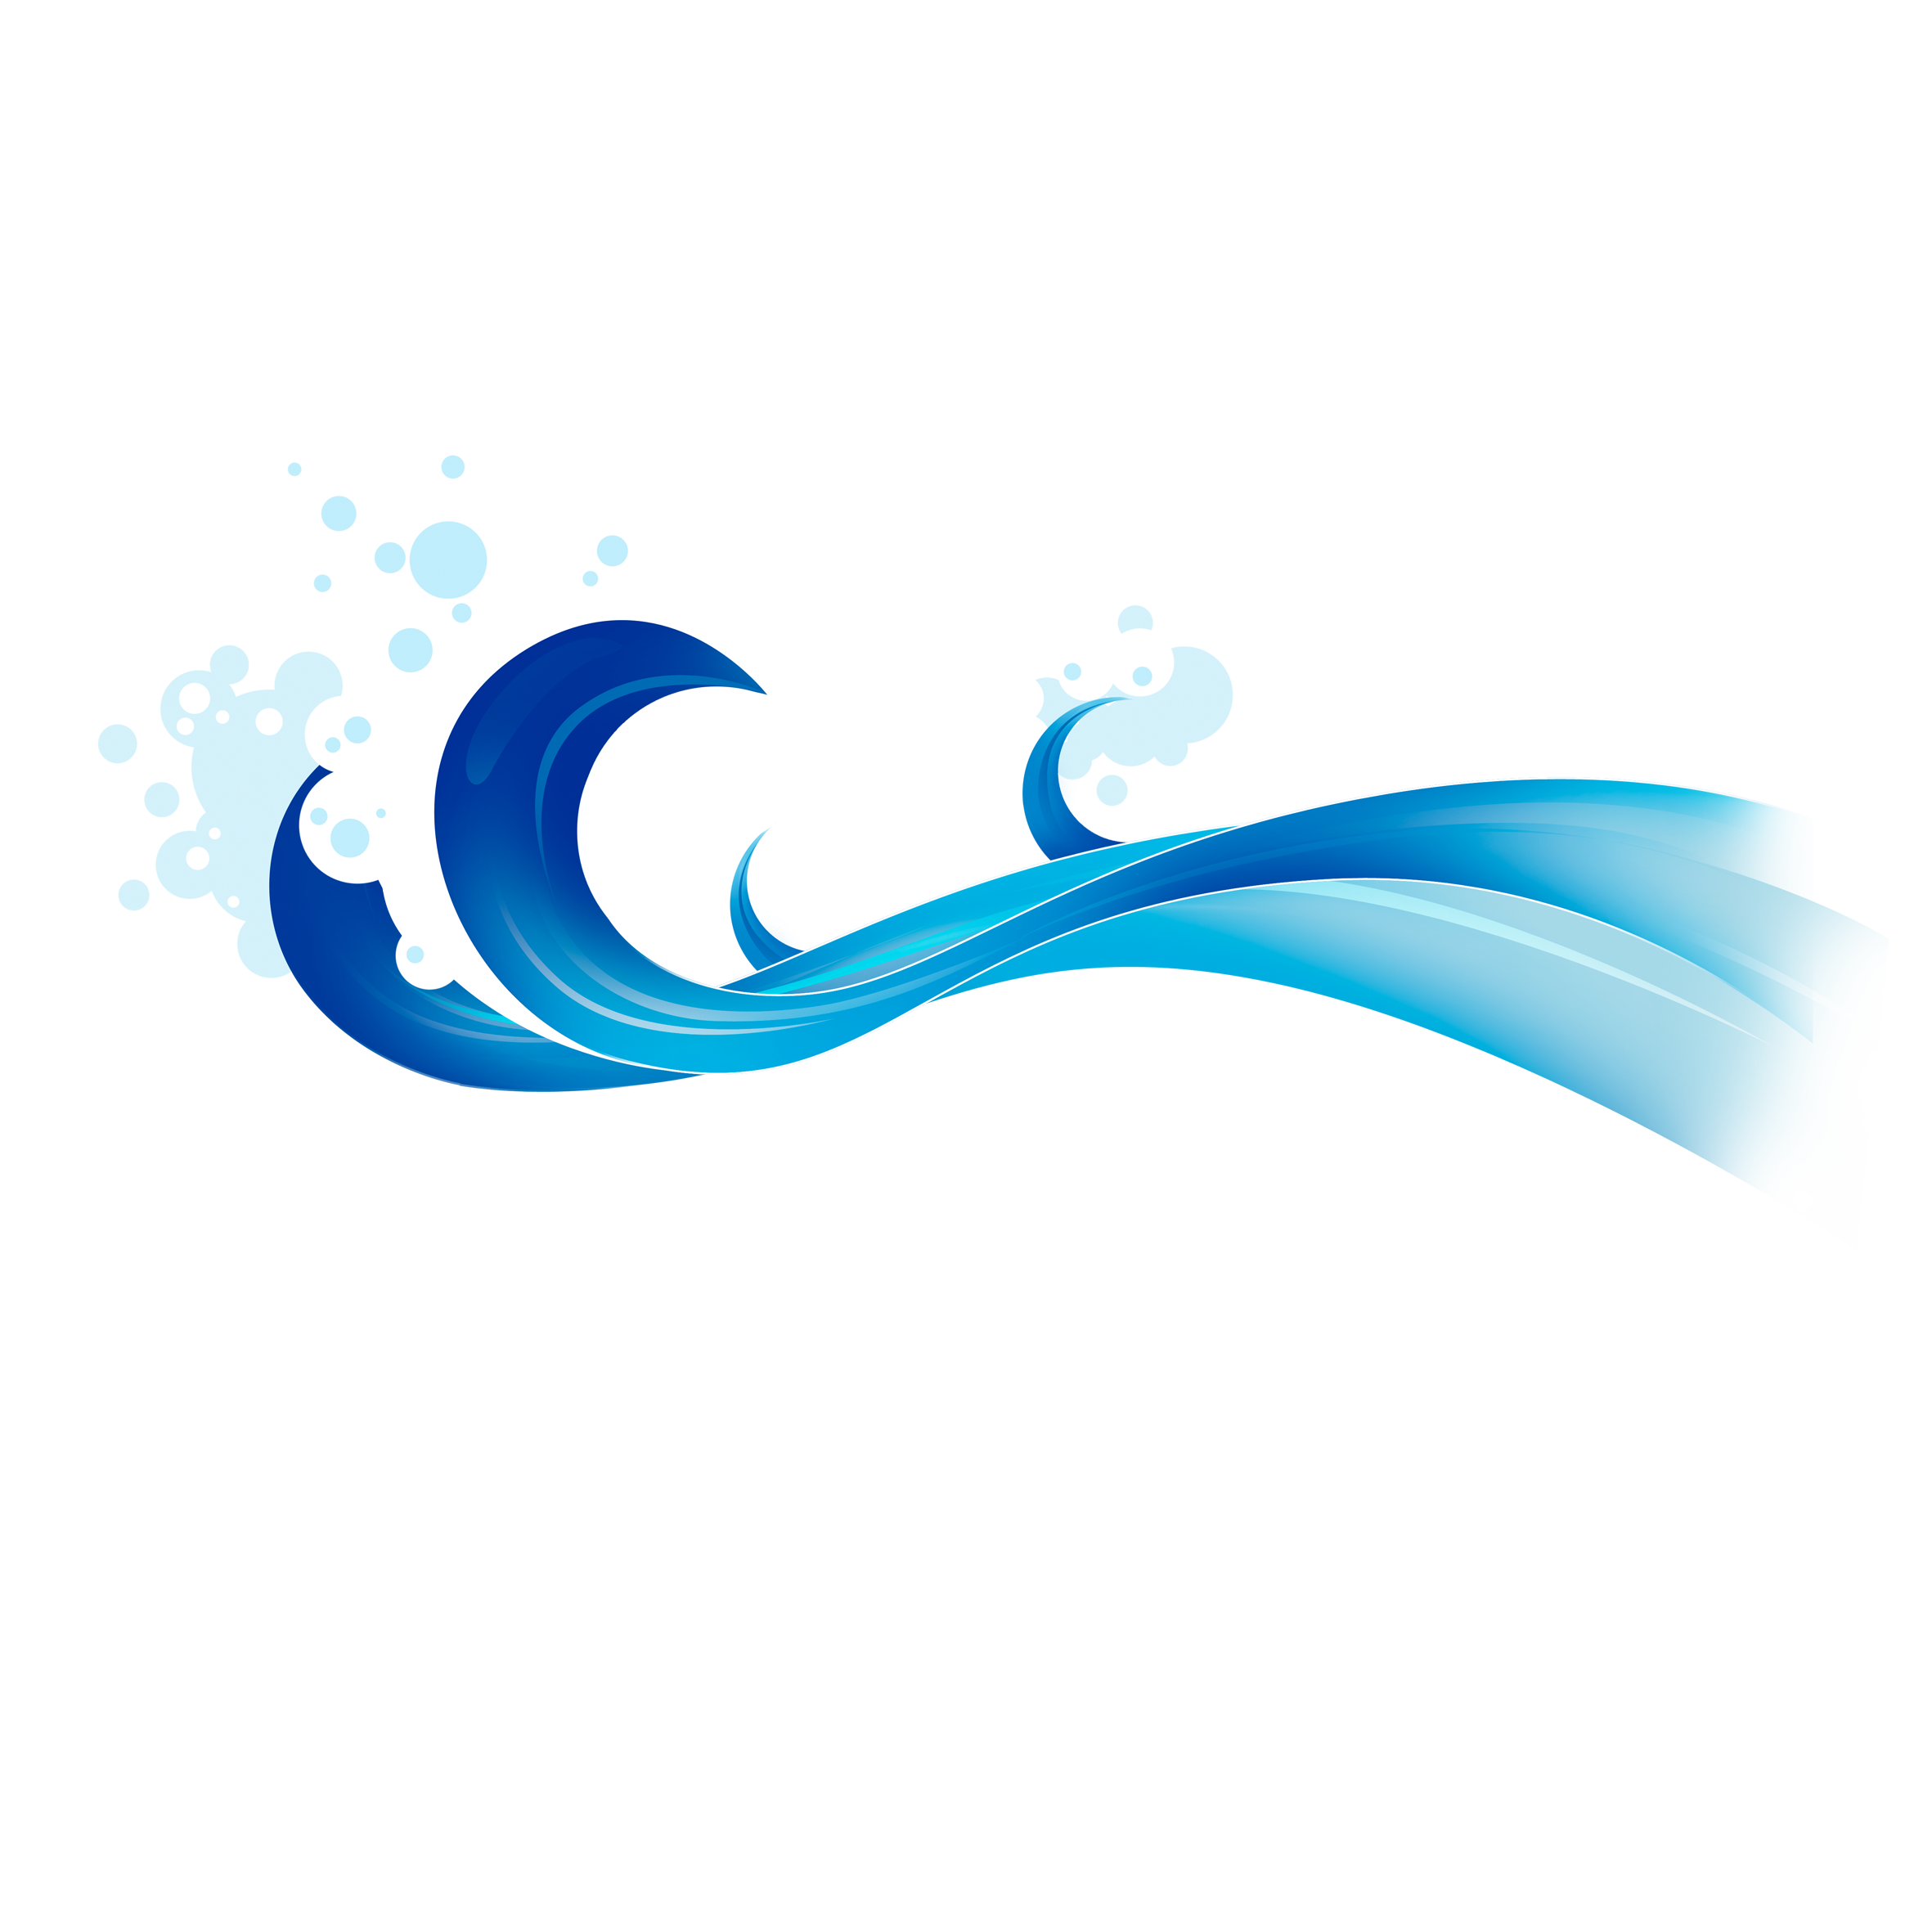 Waves clipart wave design. Blue clip art transprent